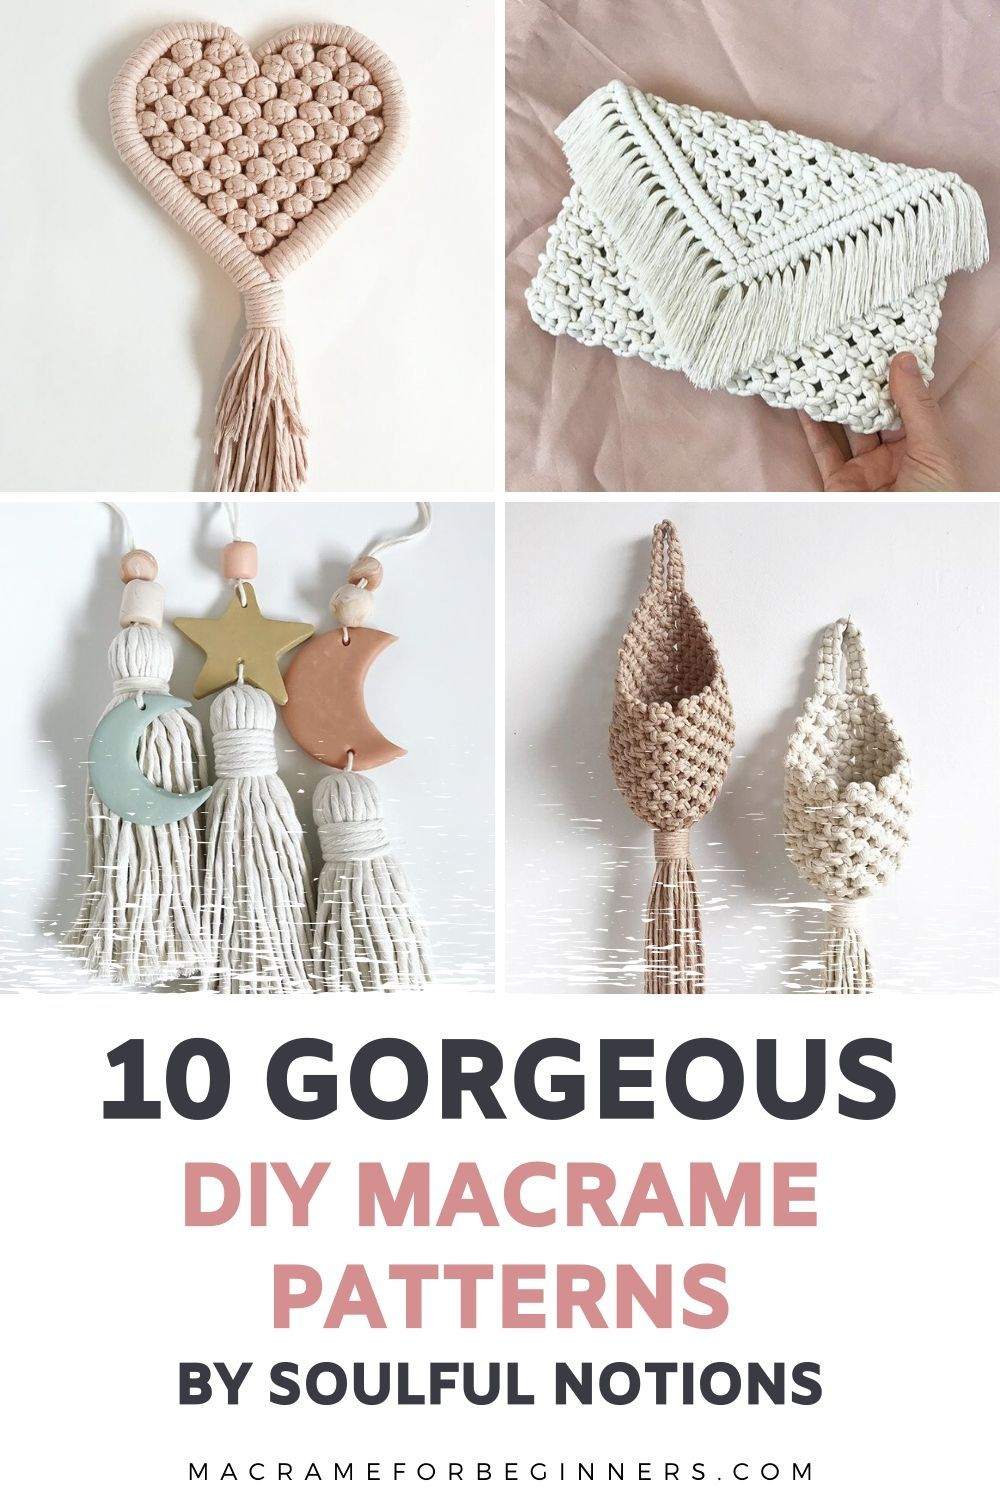 Top 10 Most Gorgeous Macrame Tutorials by Soulful Notions | Macrame for Beginners